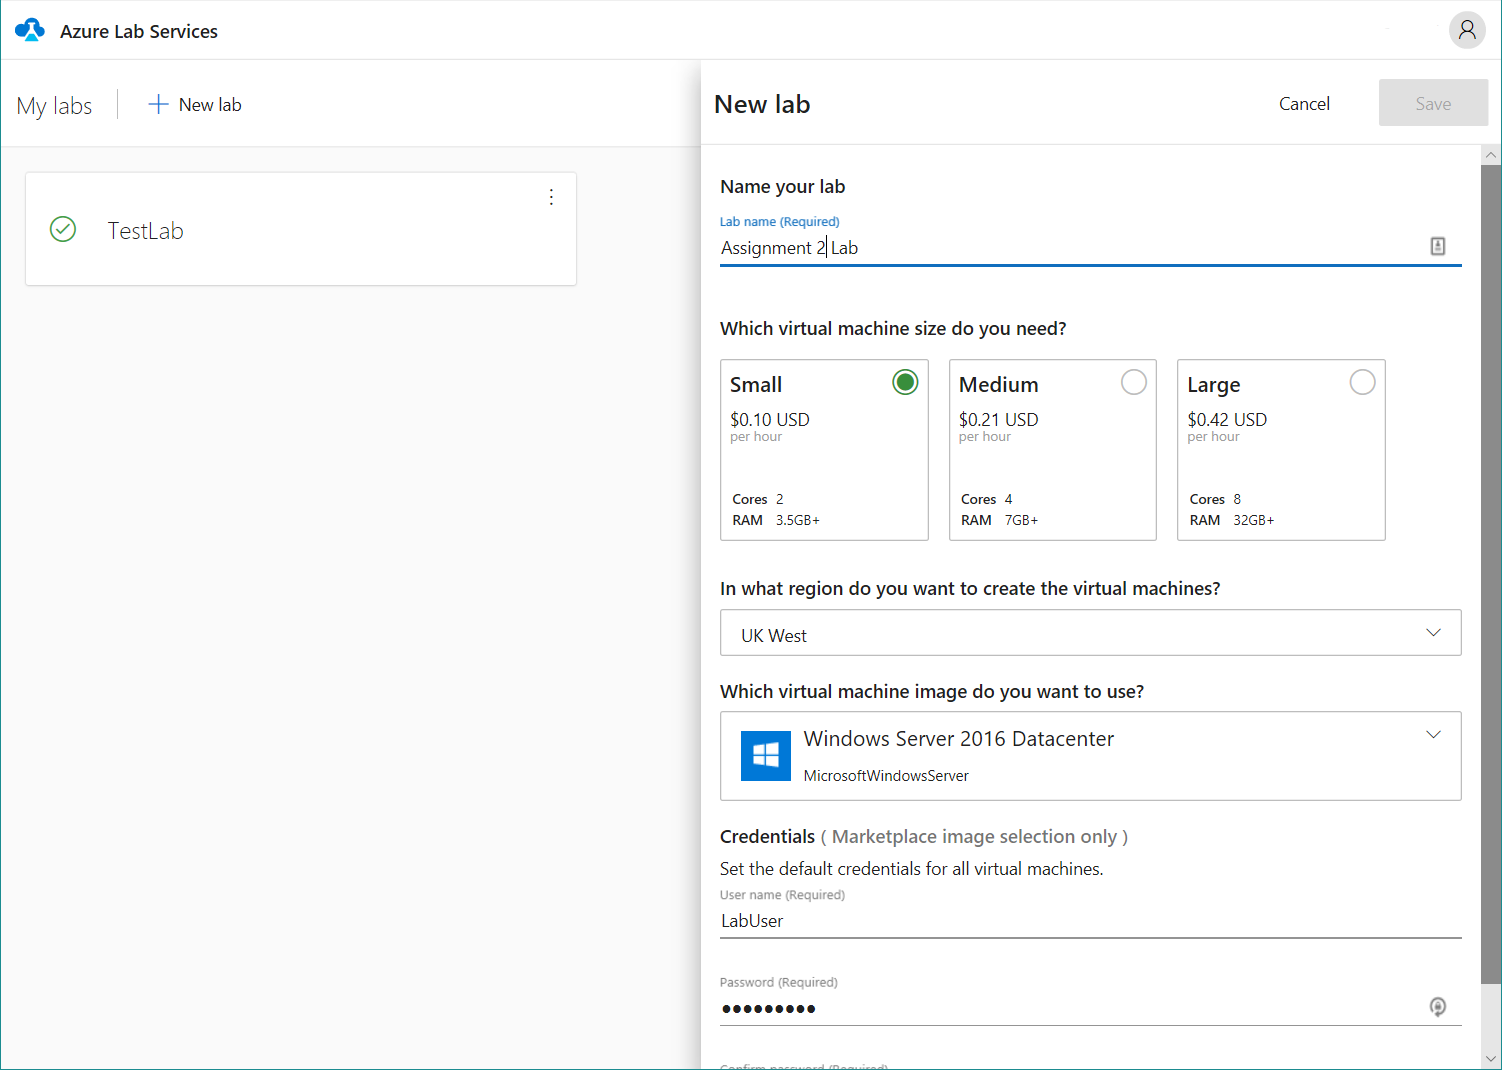 Tip 176 - Azure Lab Services Demystified | Azure Tips and Tricks